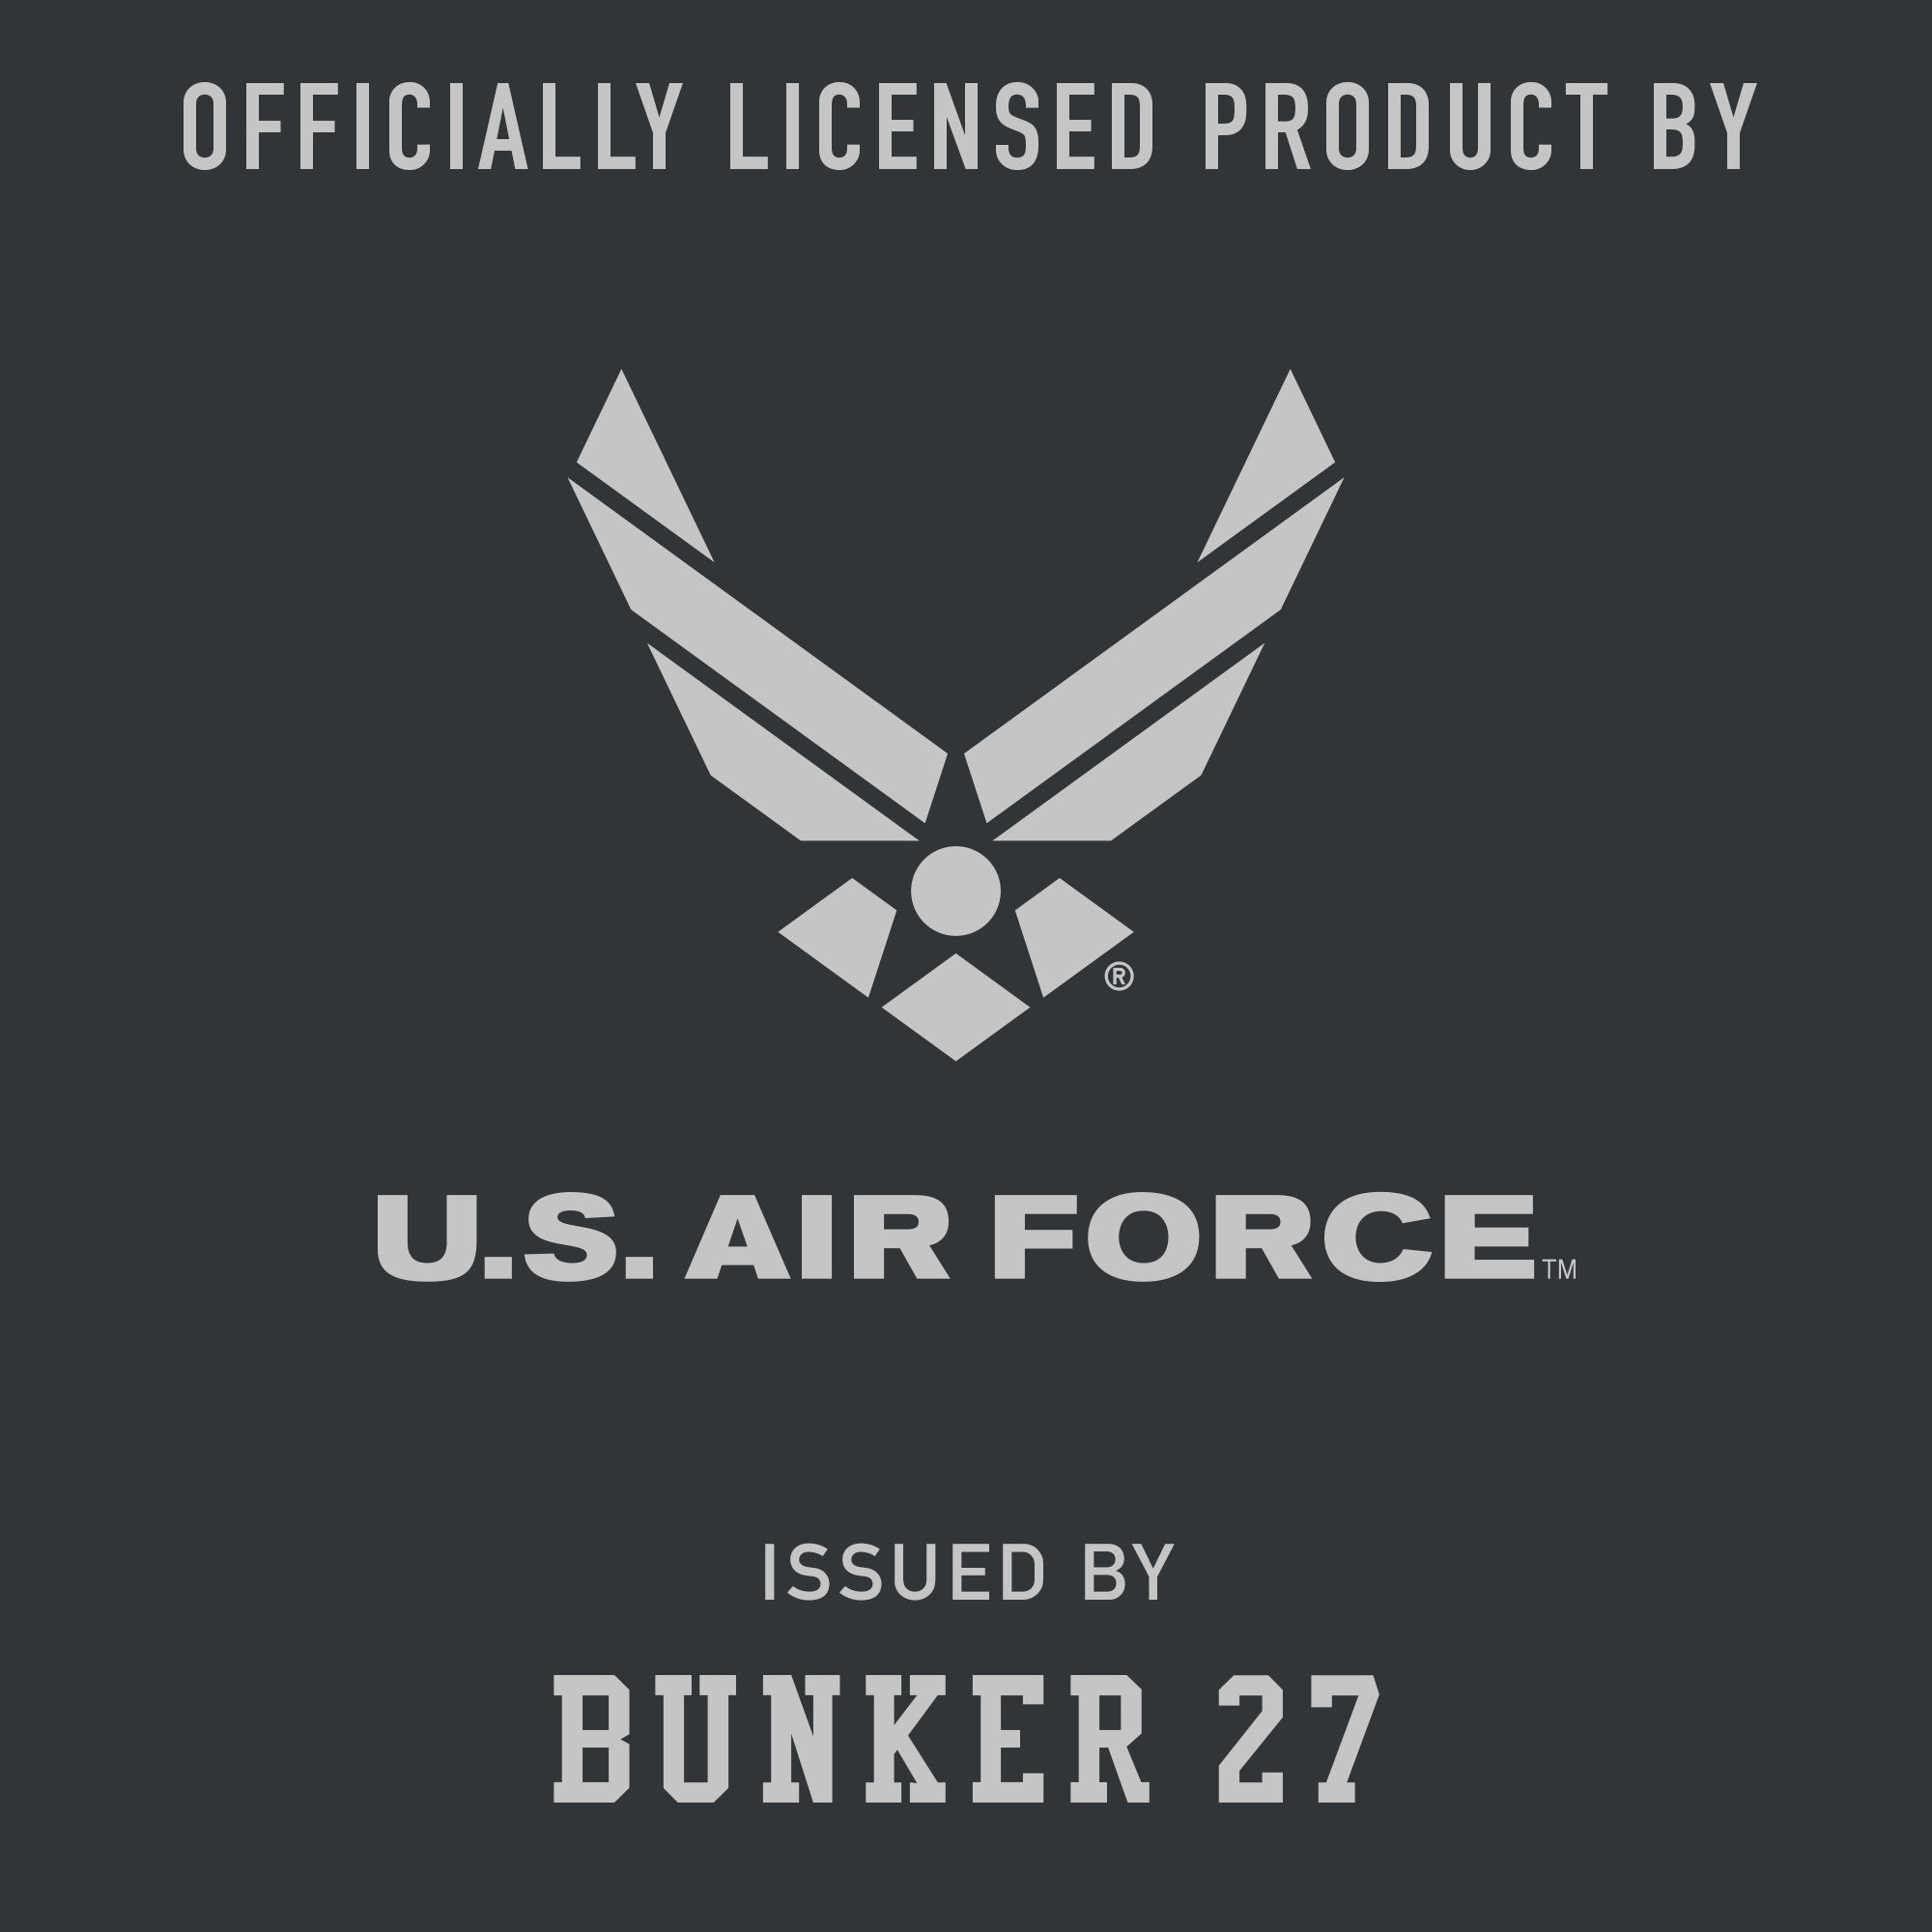 Youth Lackland AFB, Bunker 27